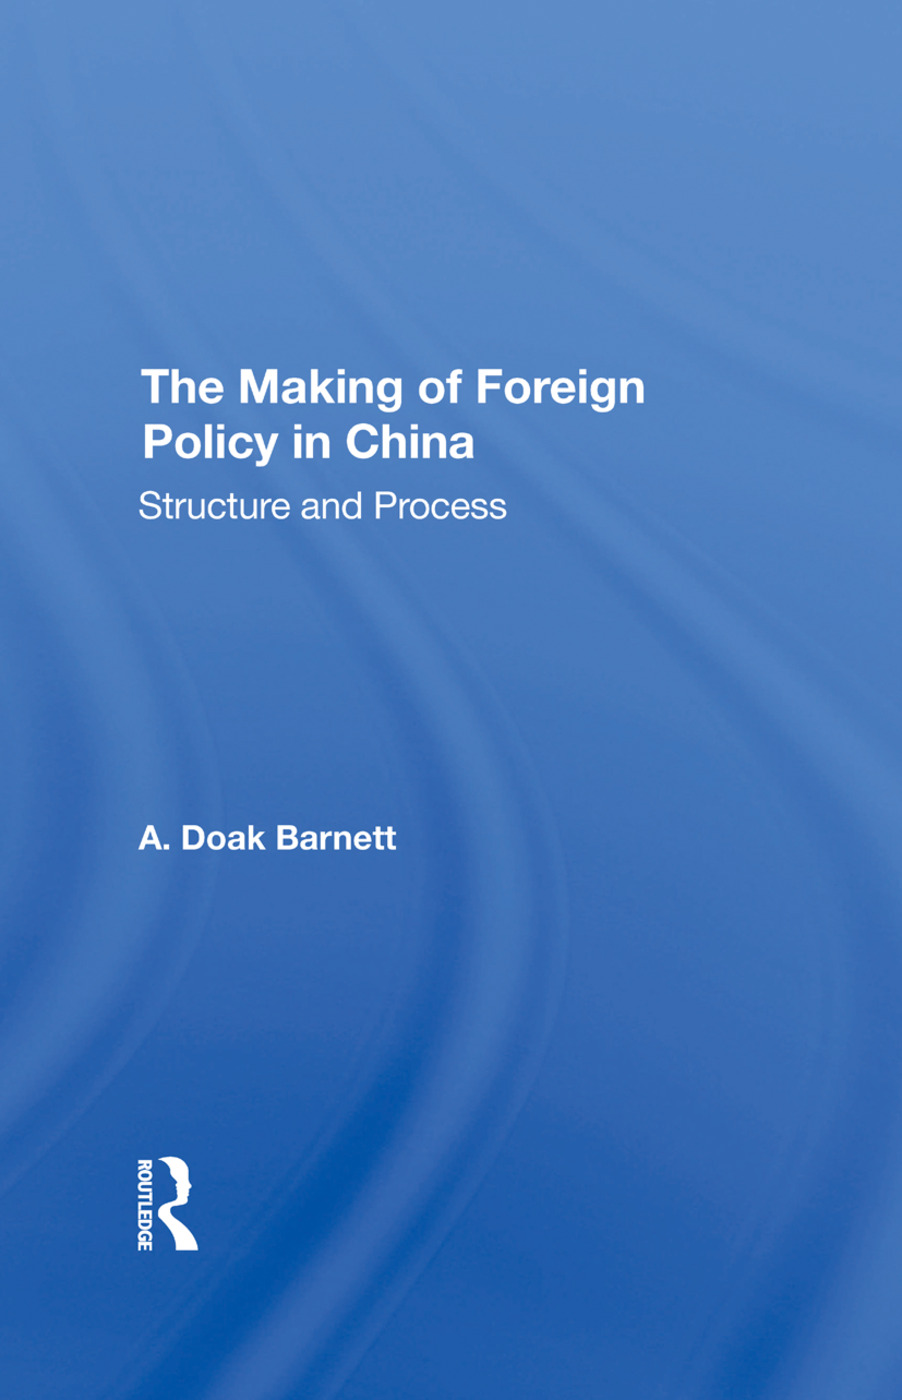 The Making of Foreign Policy in China